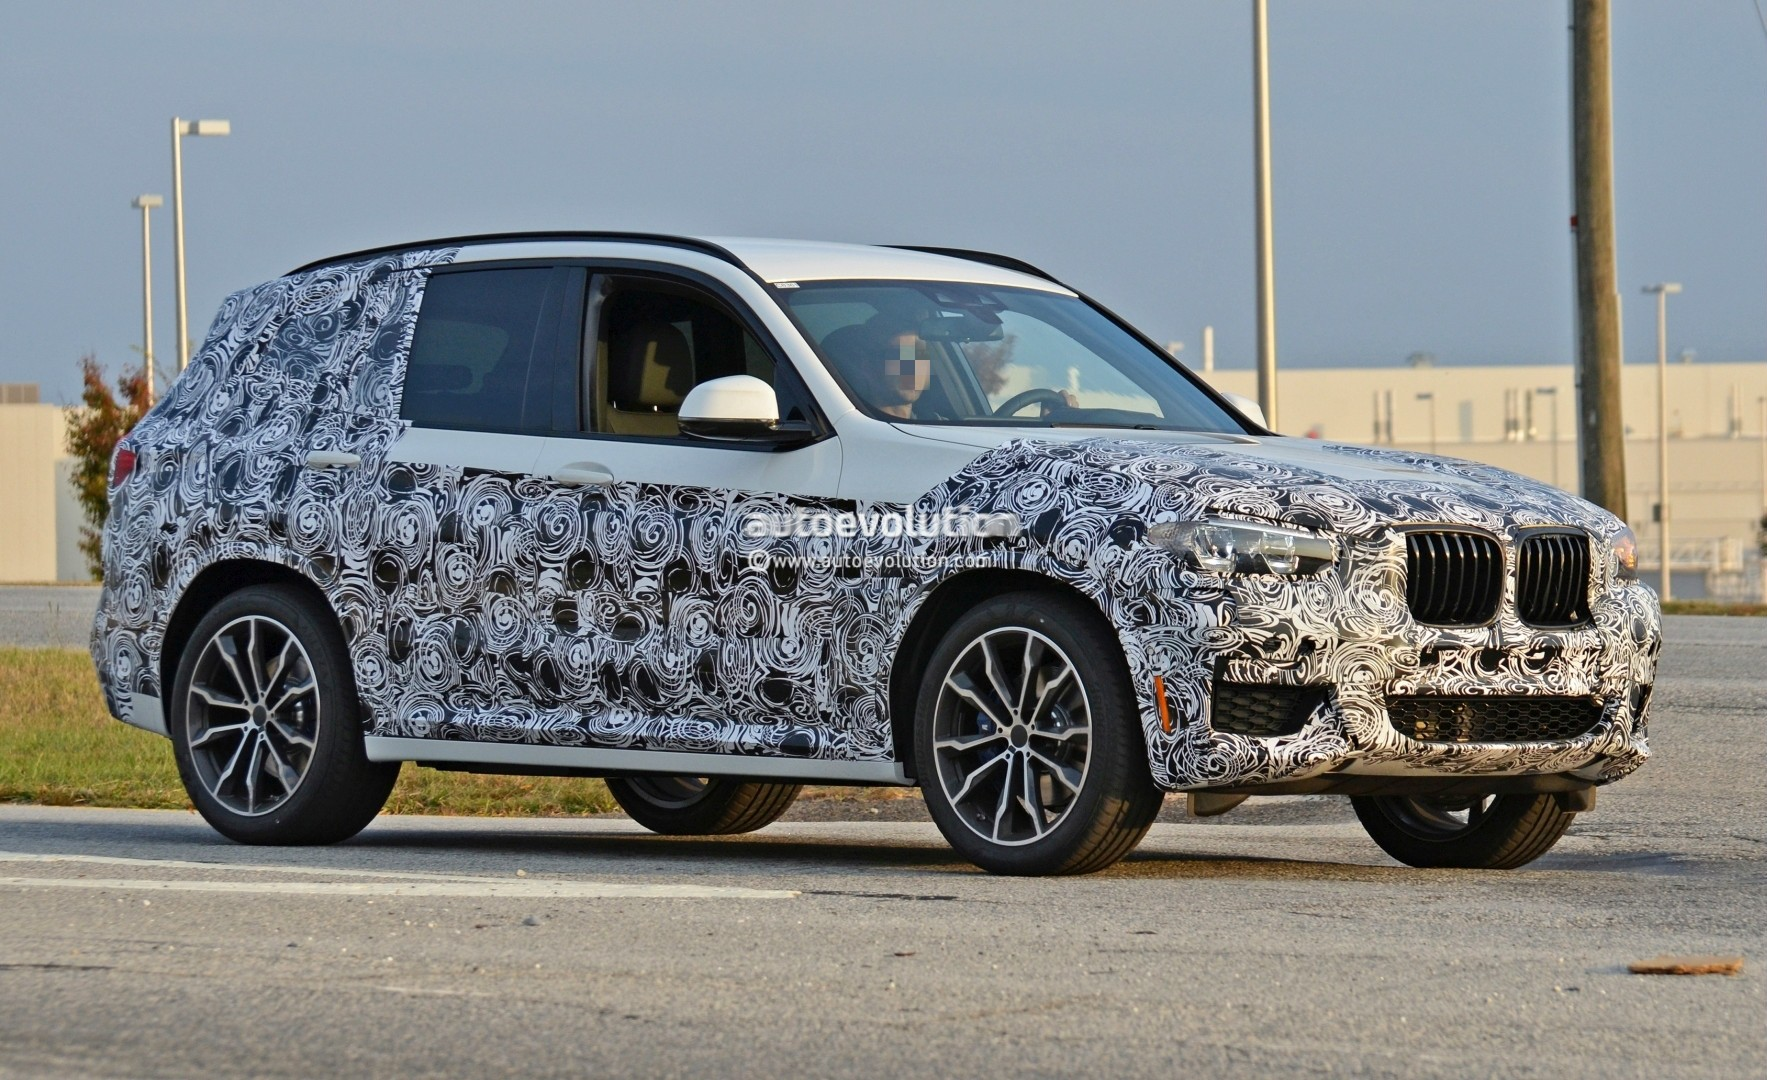 2016 - [BMW] X3 [G01] - Page 5 2018-bmw-x3-spied-at-spartanburg-plant-with-less-camouflage-shows-mature-design_3